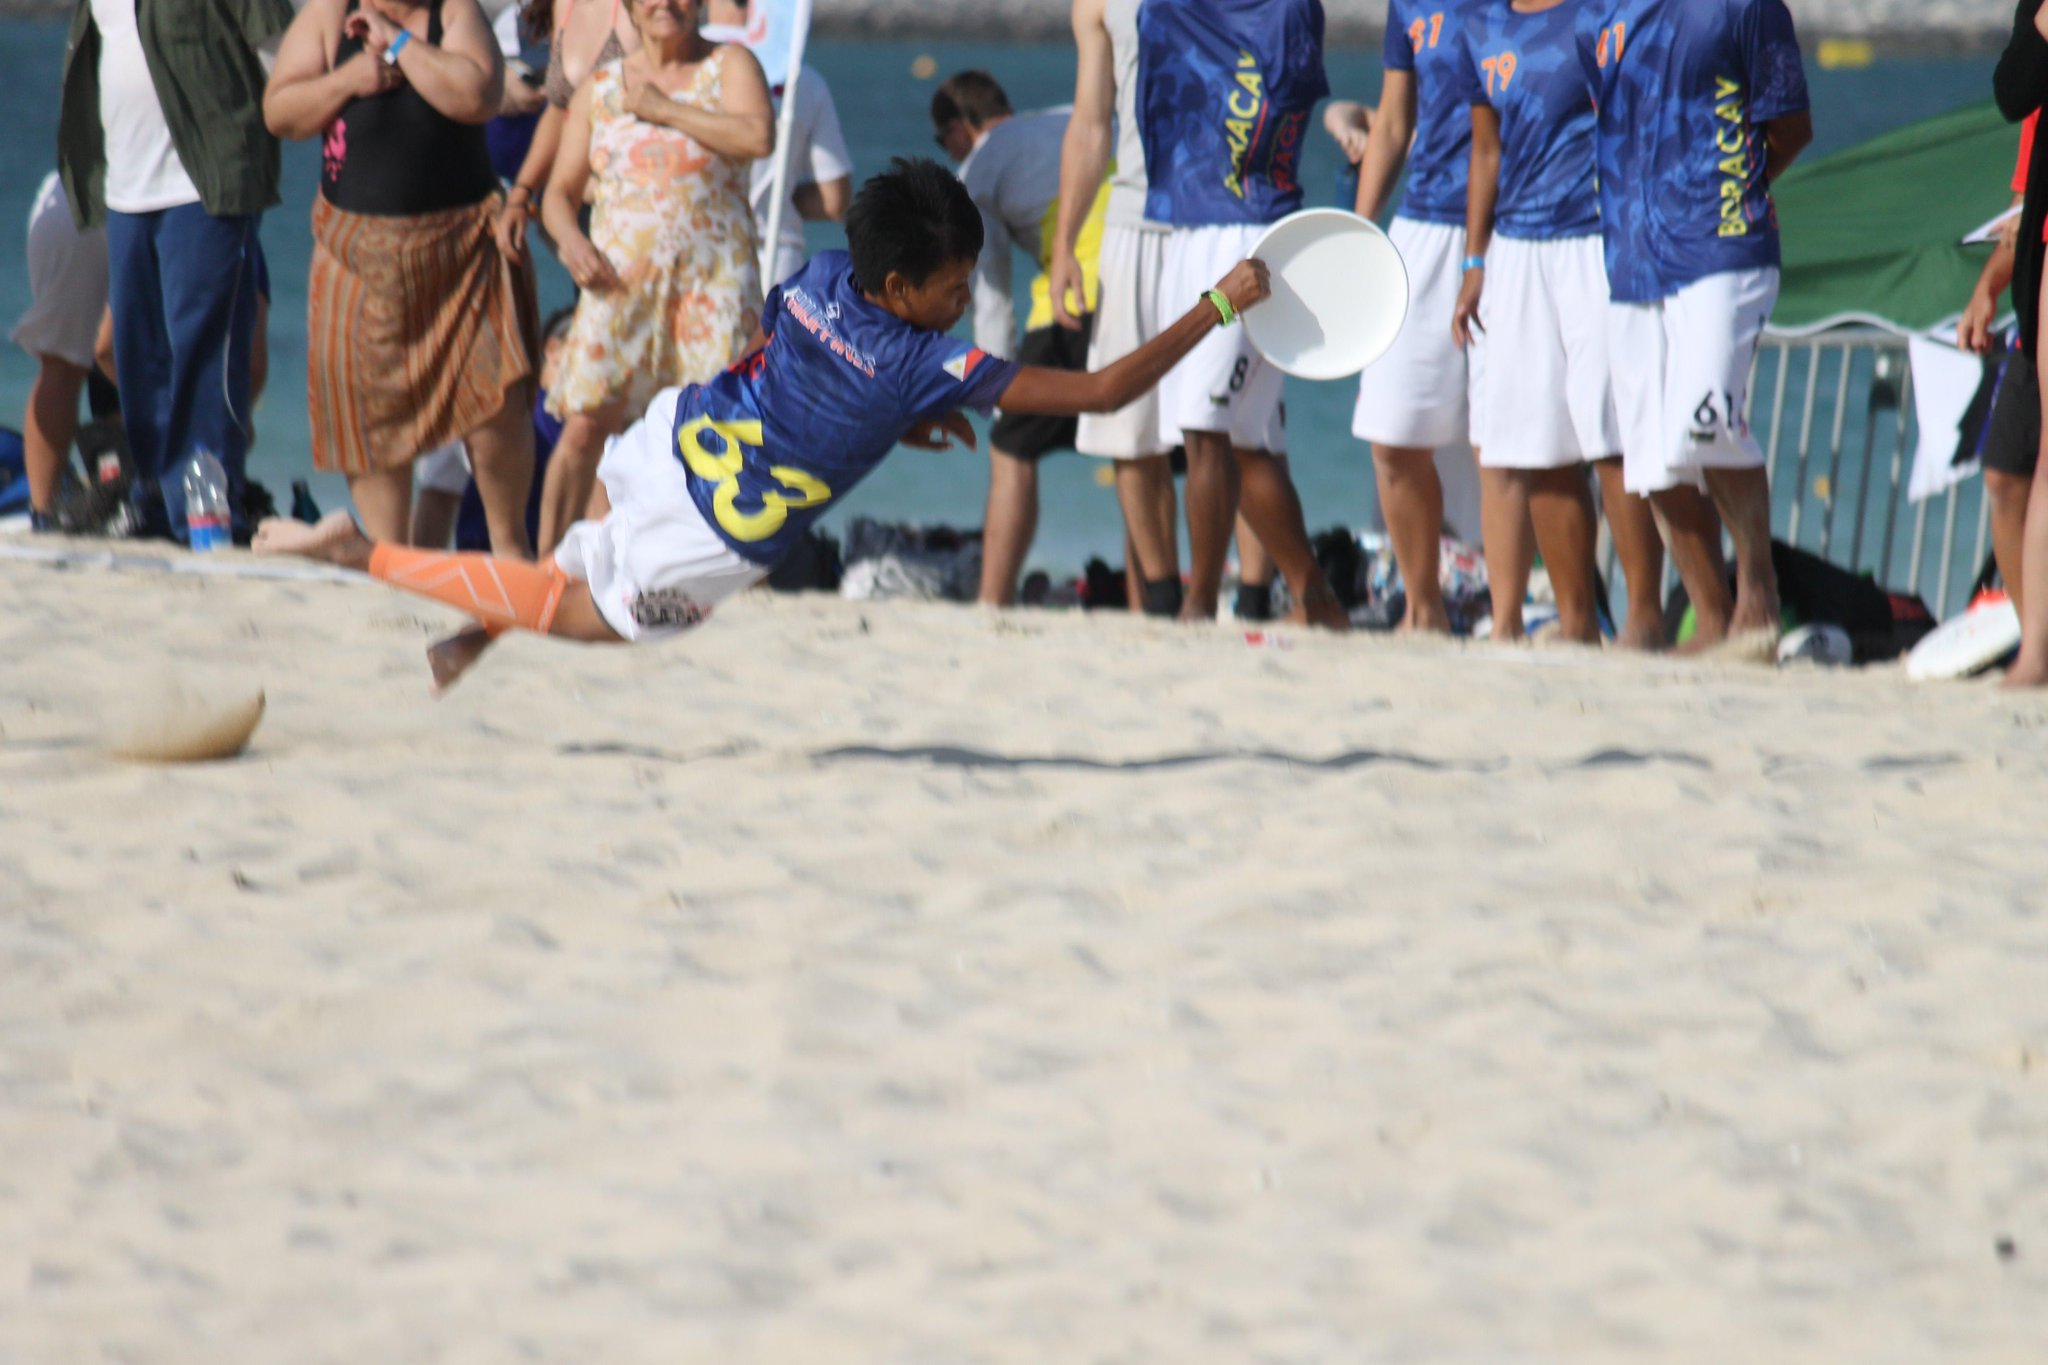 #WCBU2015 Action from Dubai http://t.co/NxJYj5NntH <a href='http://twitter.com/duncanebradbury/status/578104592333819904/photo/1' target='_blank'>See original »</a>